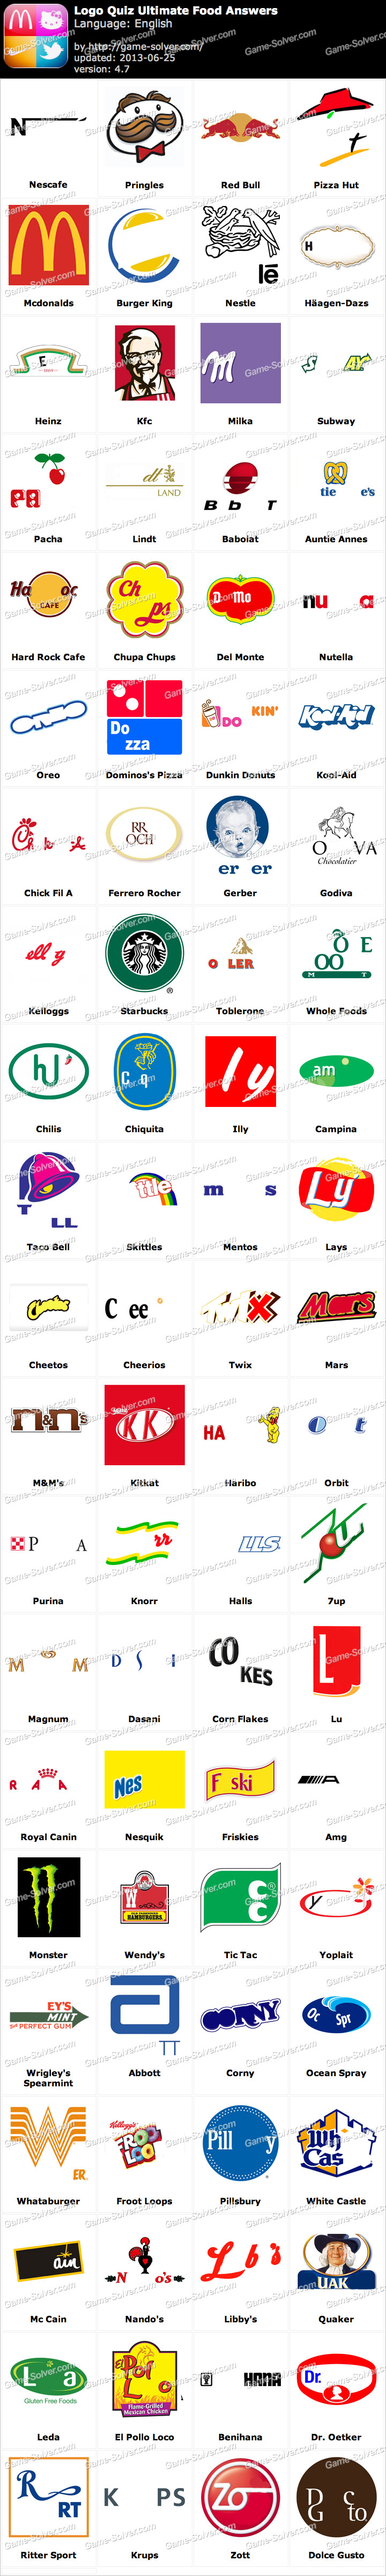 Logo Quiz Ultimate Food Answers - Game Solver